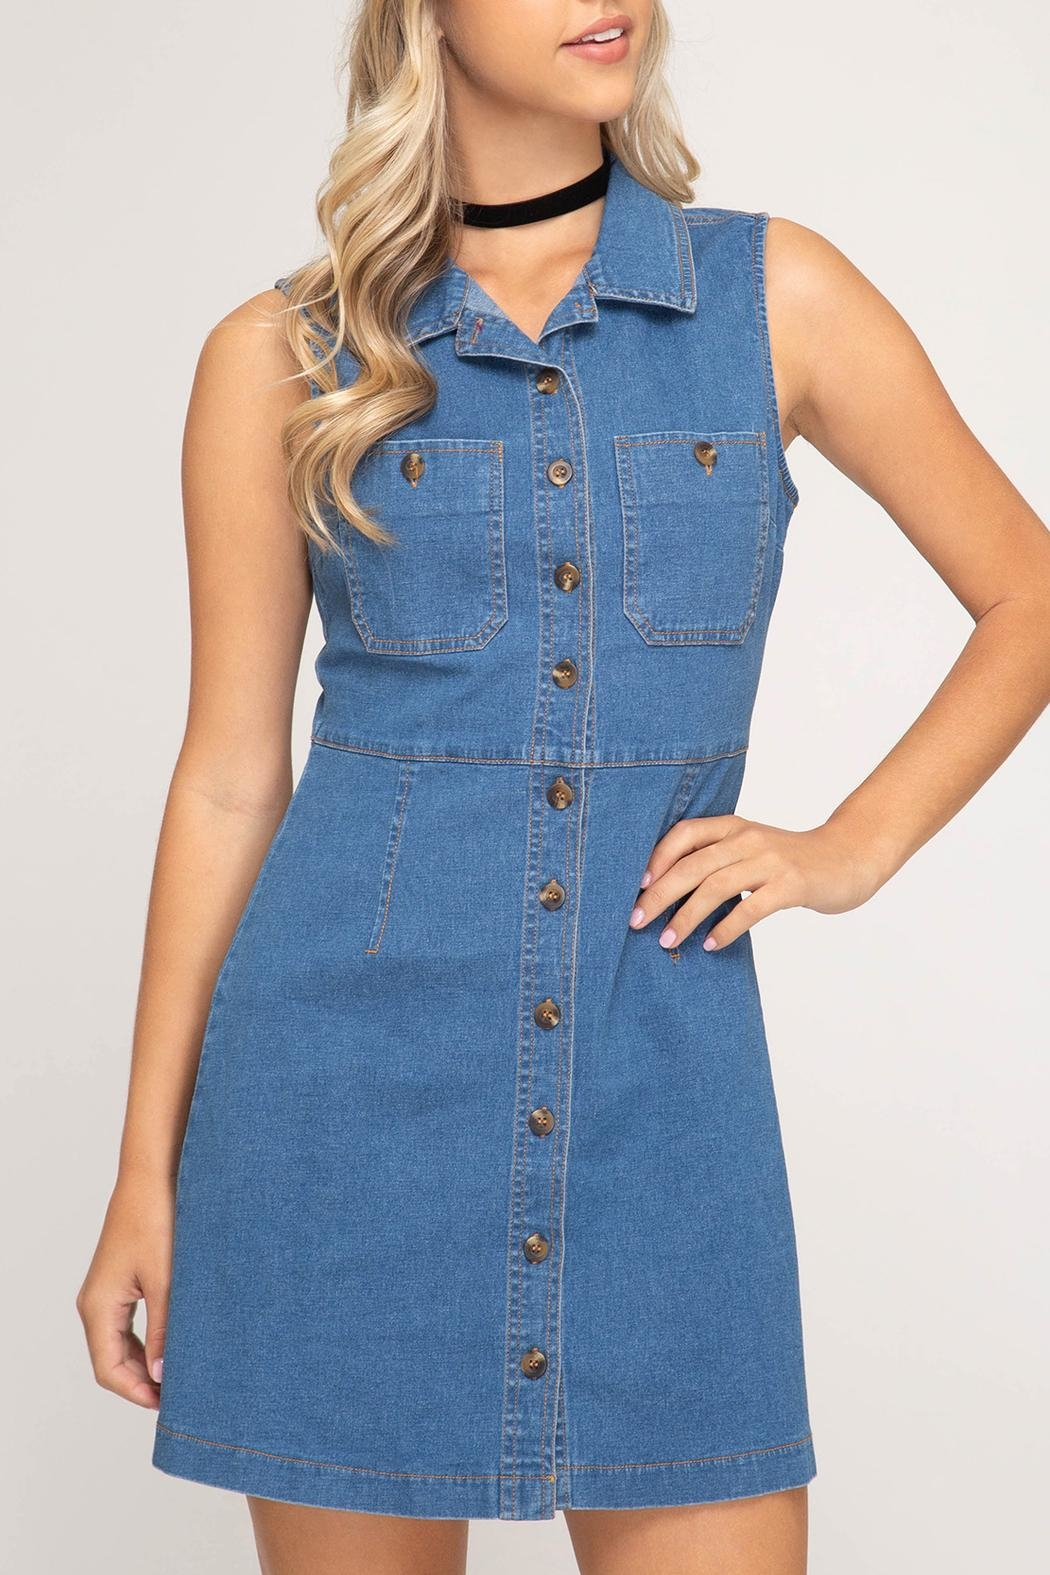 She + Sky Denim Button-Front Dress - Main Image